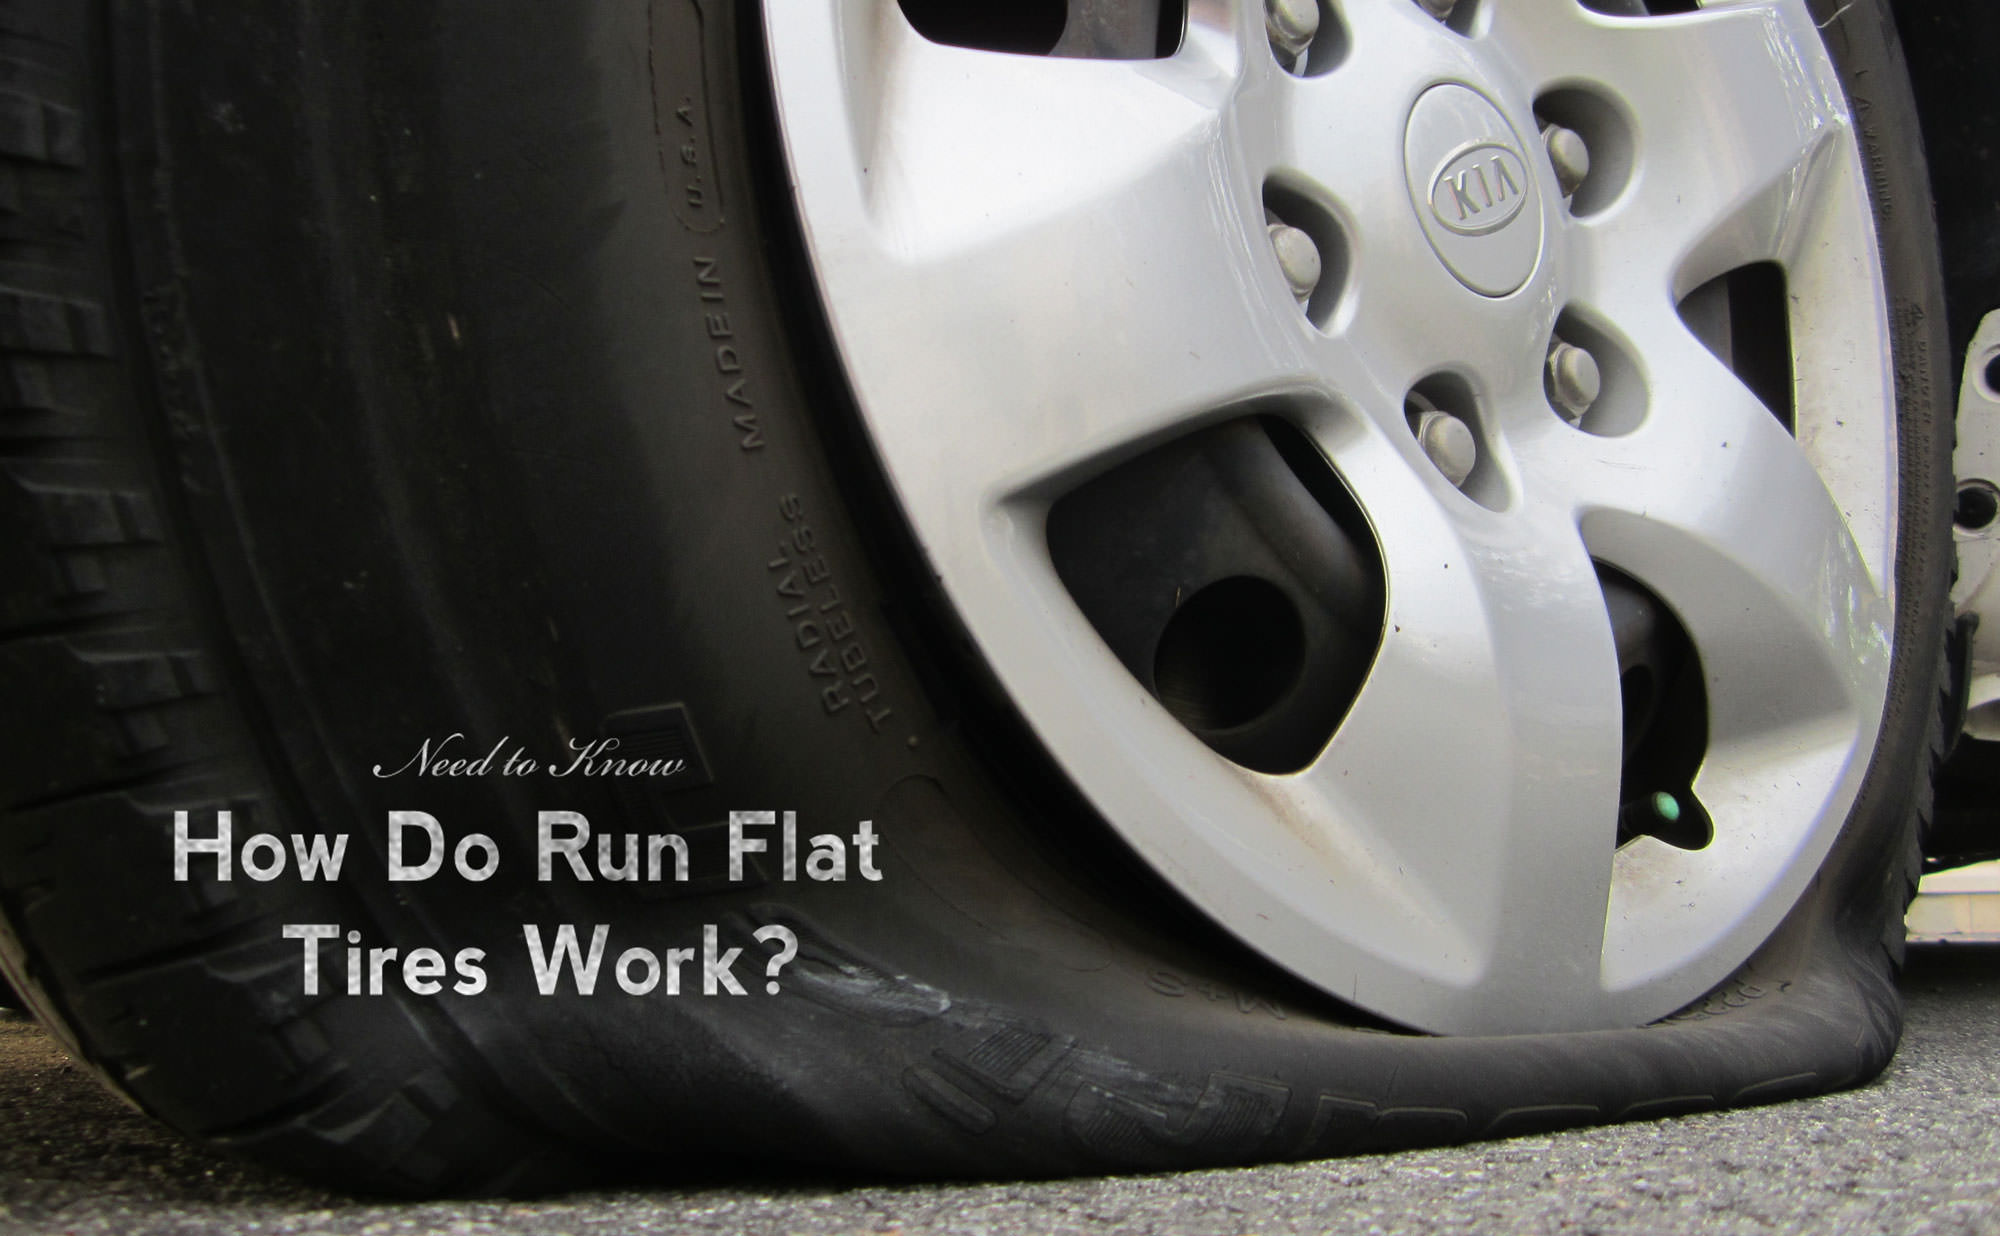 How Do Run Flat Tires Work?